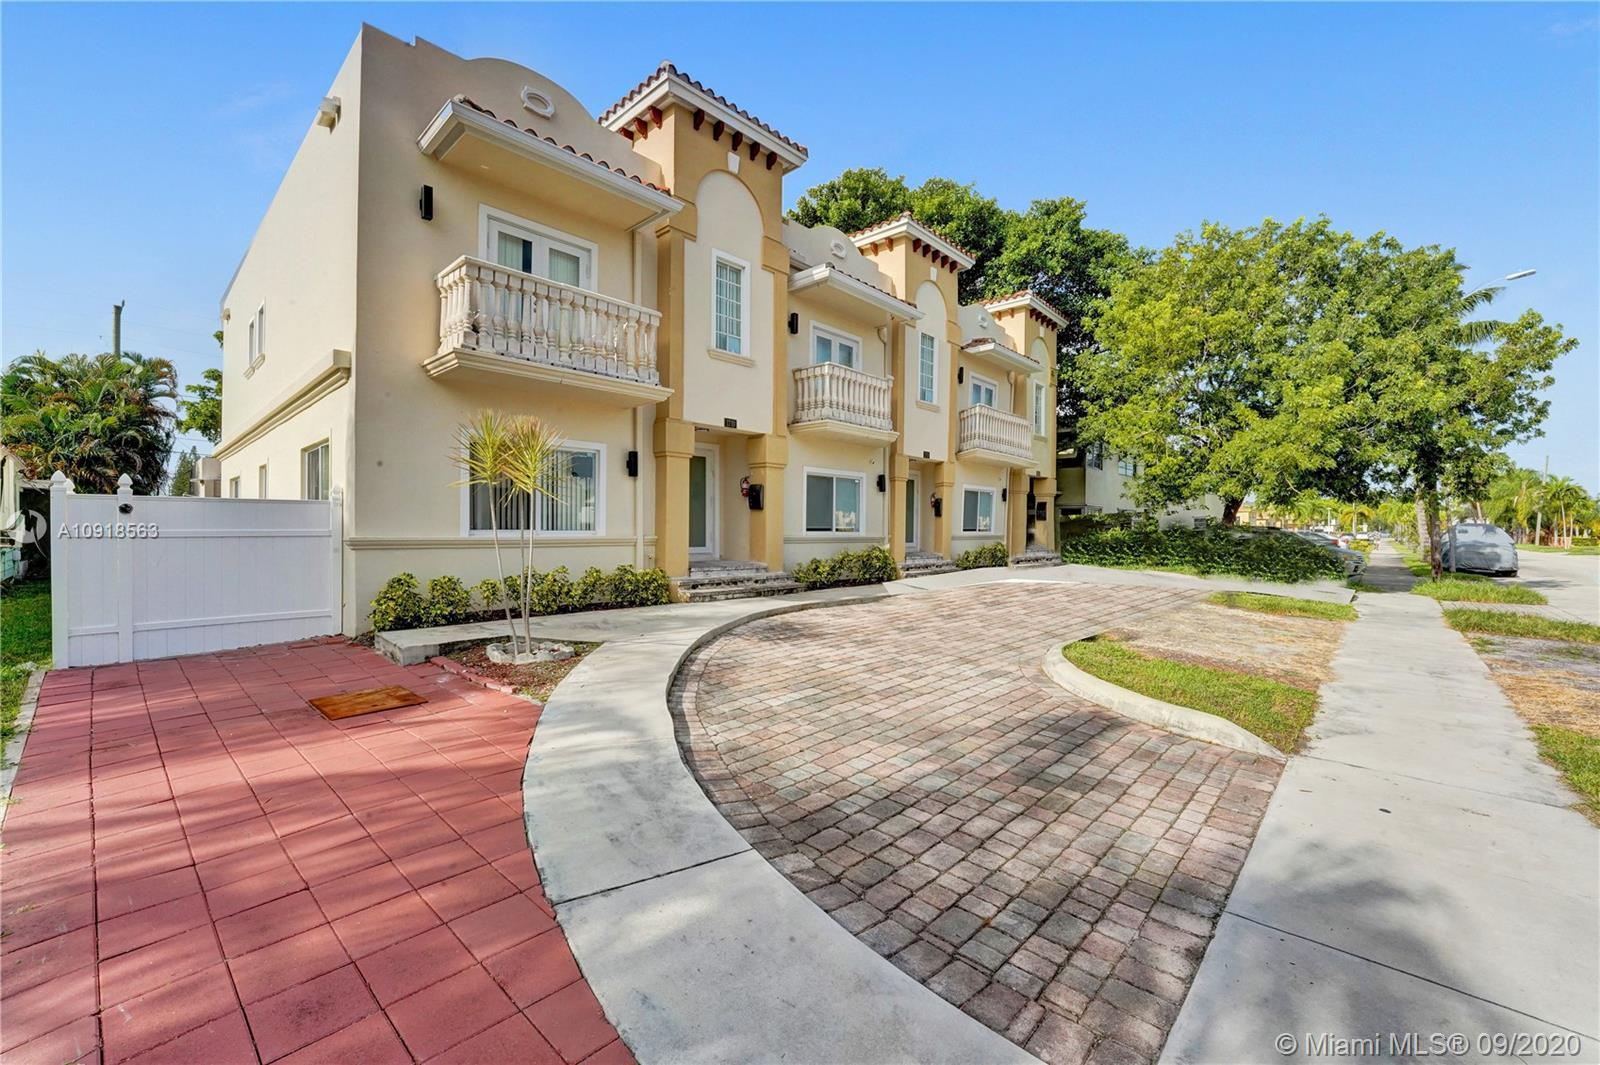 STOP RENTING, IT'S TIME TO OWN YOUR OWN HOME AND IT STARTS WITH THIS BEAUTIFUL 3 BEDROOM TOWN HOME I